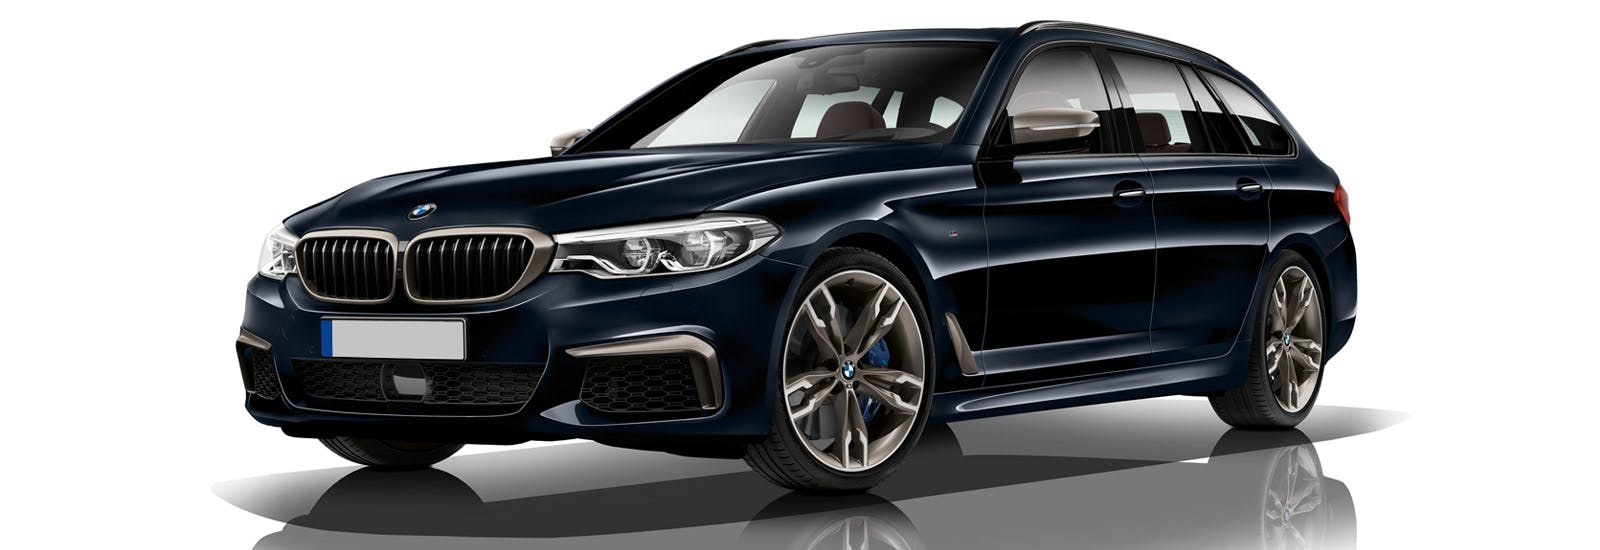 2018 bmw 550d price specs and release date carwow. Black Bedroom Furniture Sets. Home Design Ideas